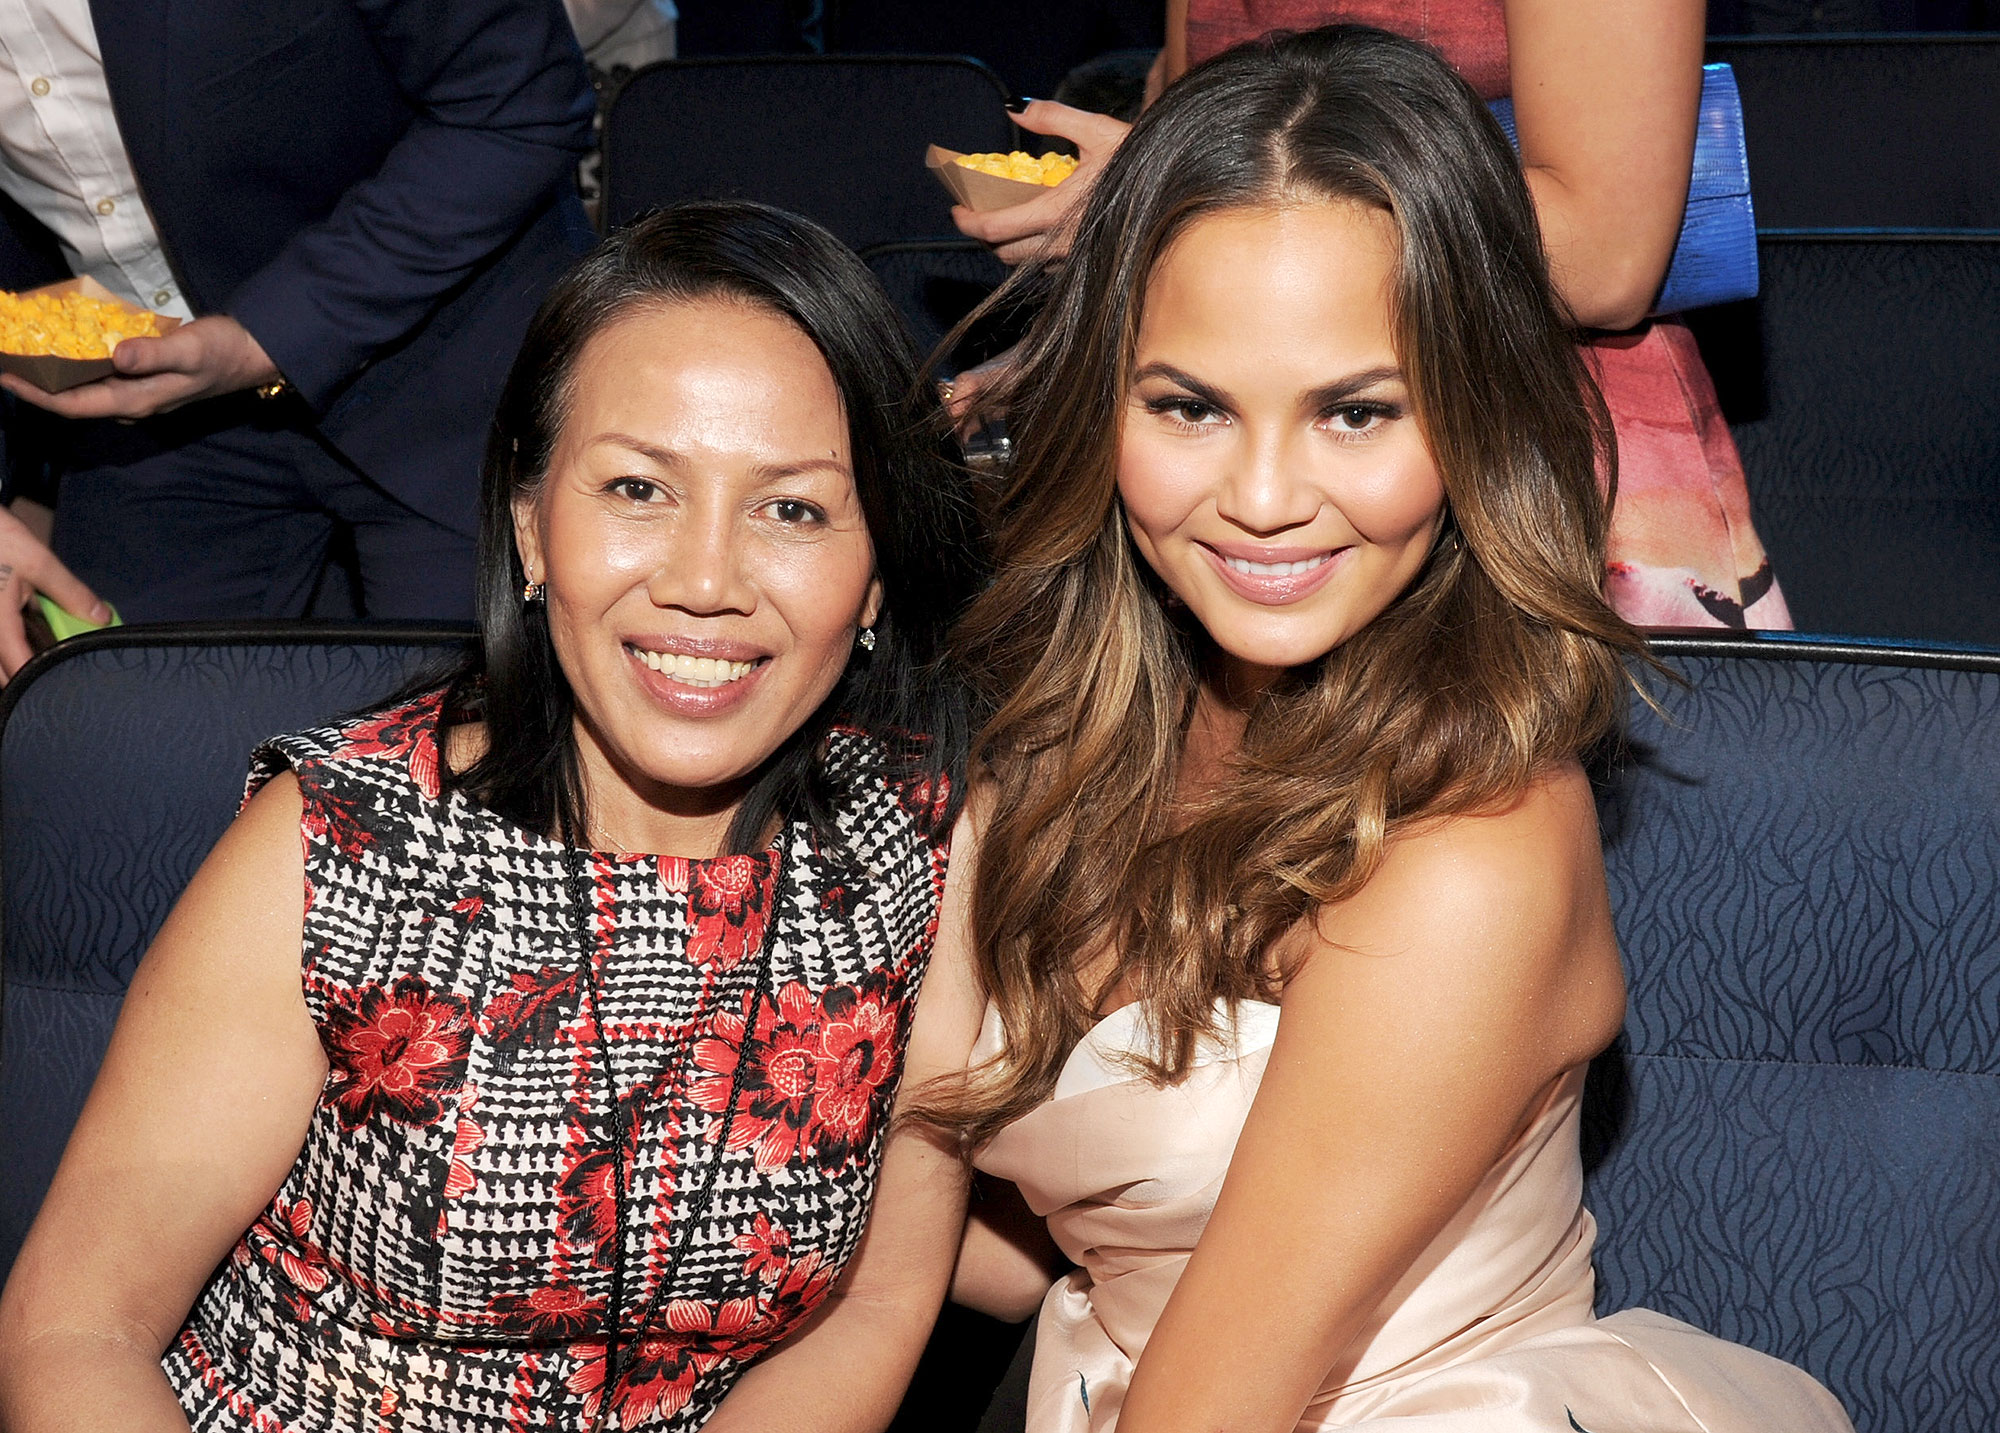 Chrissy Teigen and Her Mom Have a Seinfeld Moment with Homemade Sausages